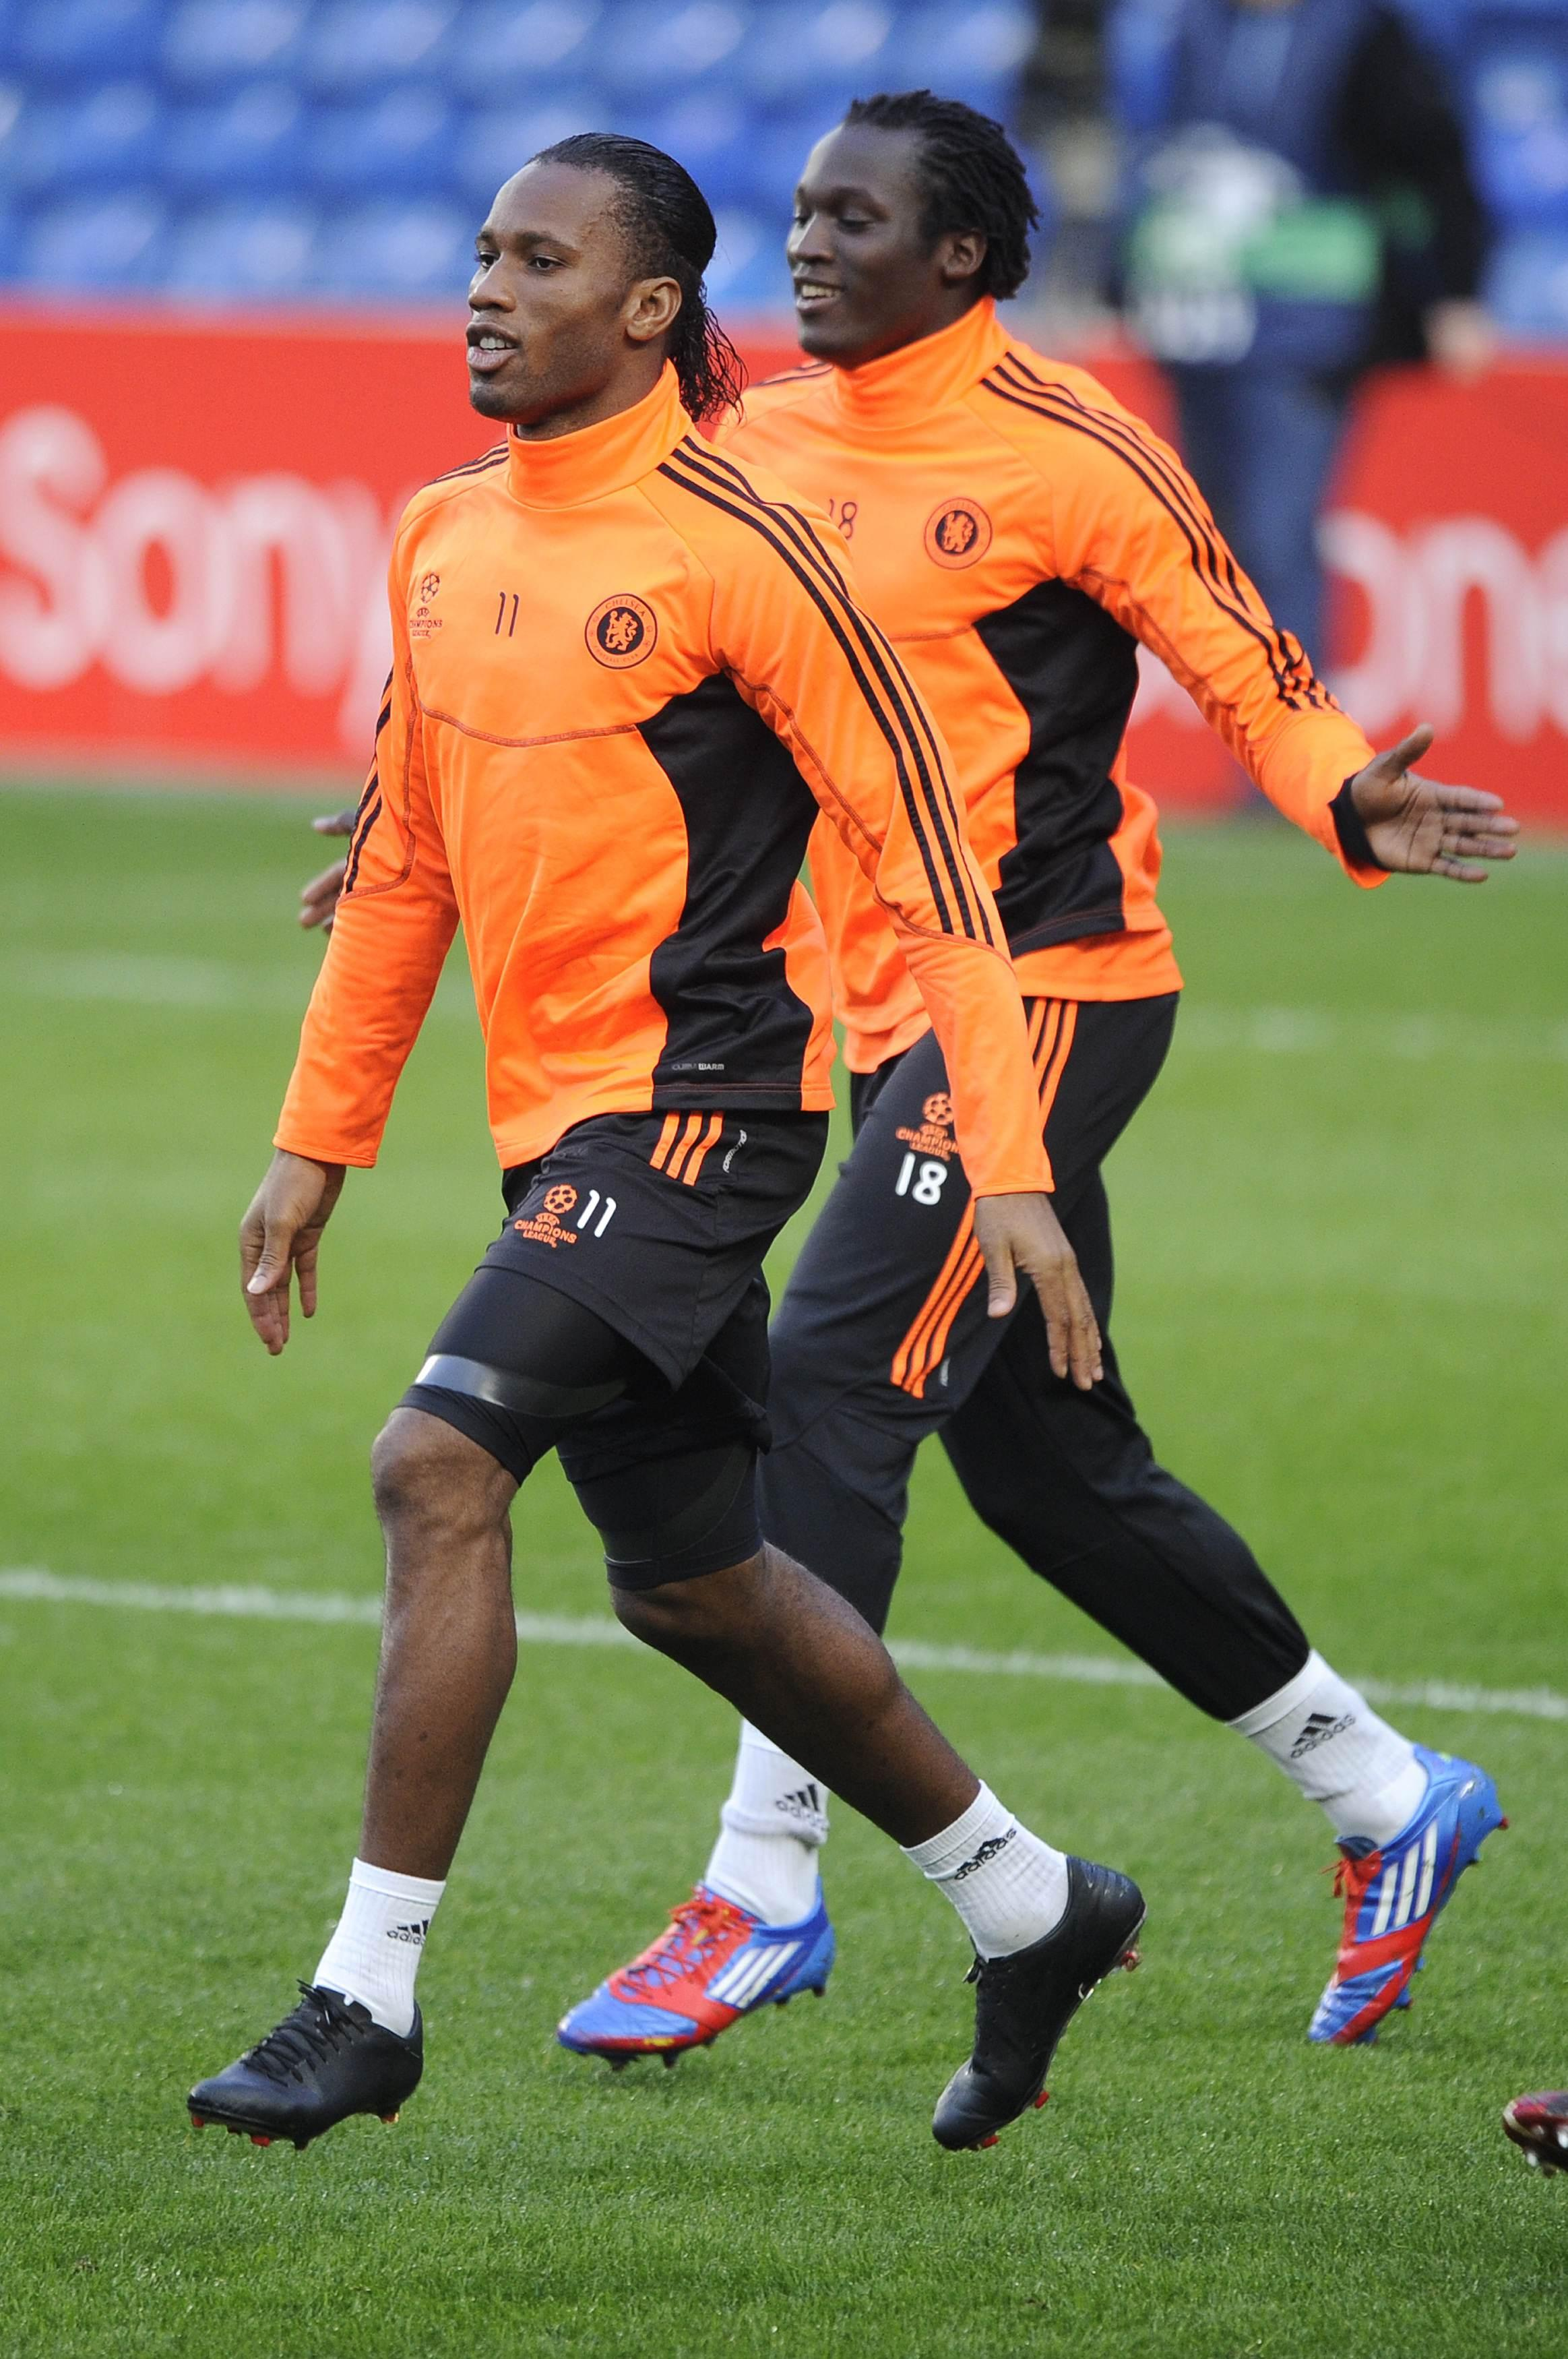 Drogba and Lukaku built up a close relationship while they played together at Chelsea